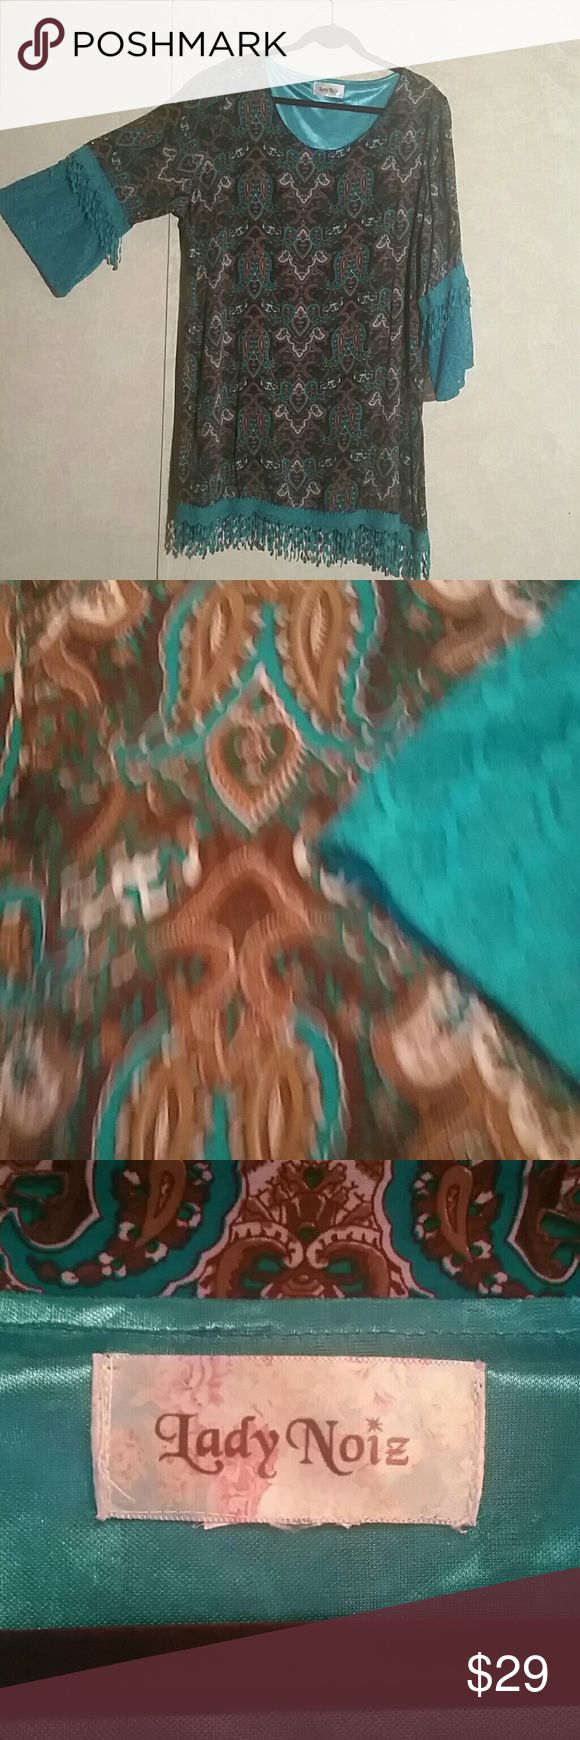 Marvelous Paisley tunic One of my favorite prints paisley This tunic offers soft flowing rayon